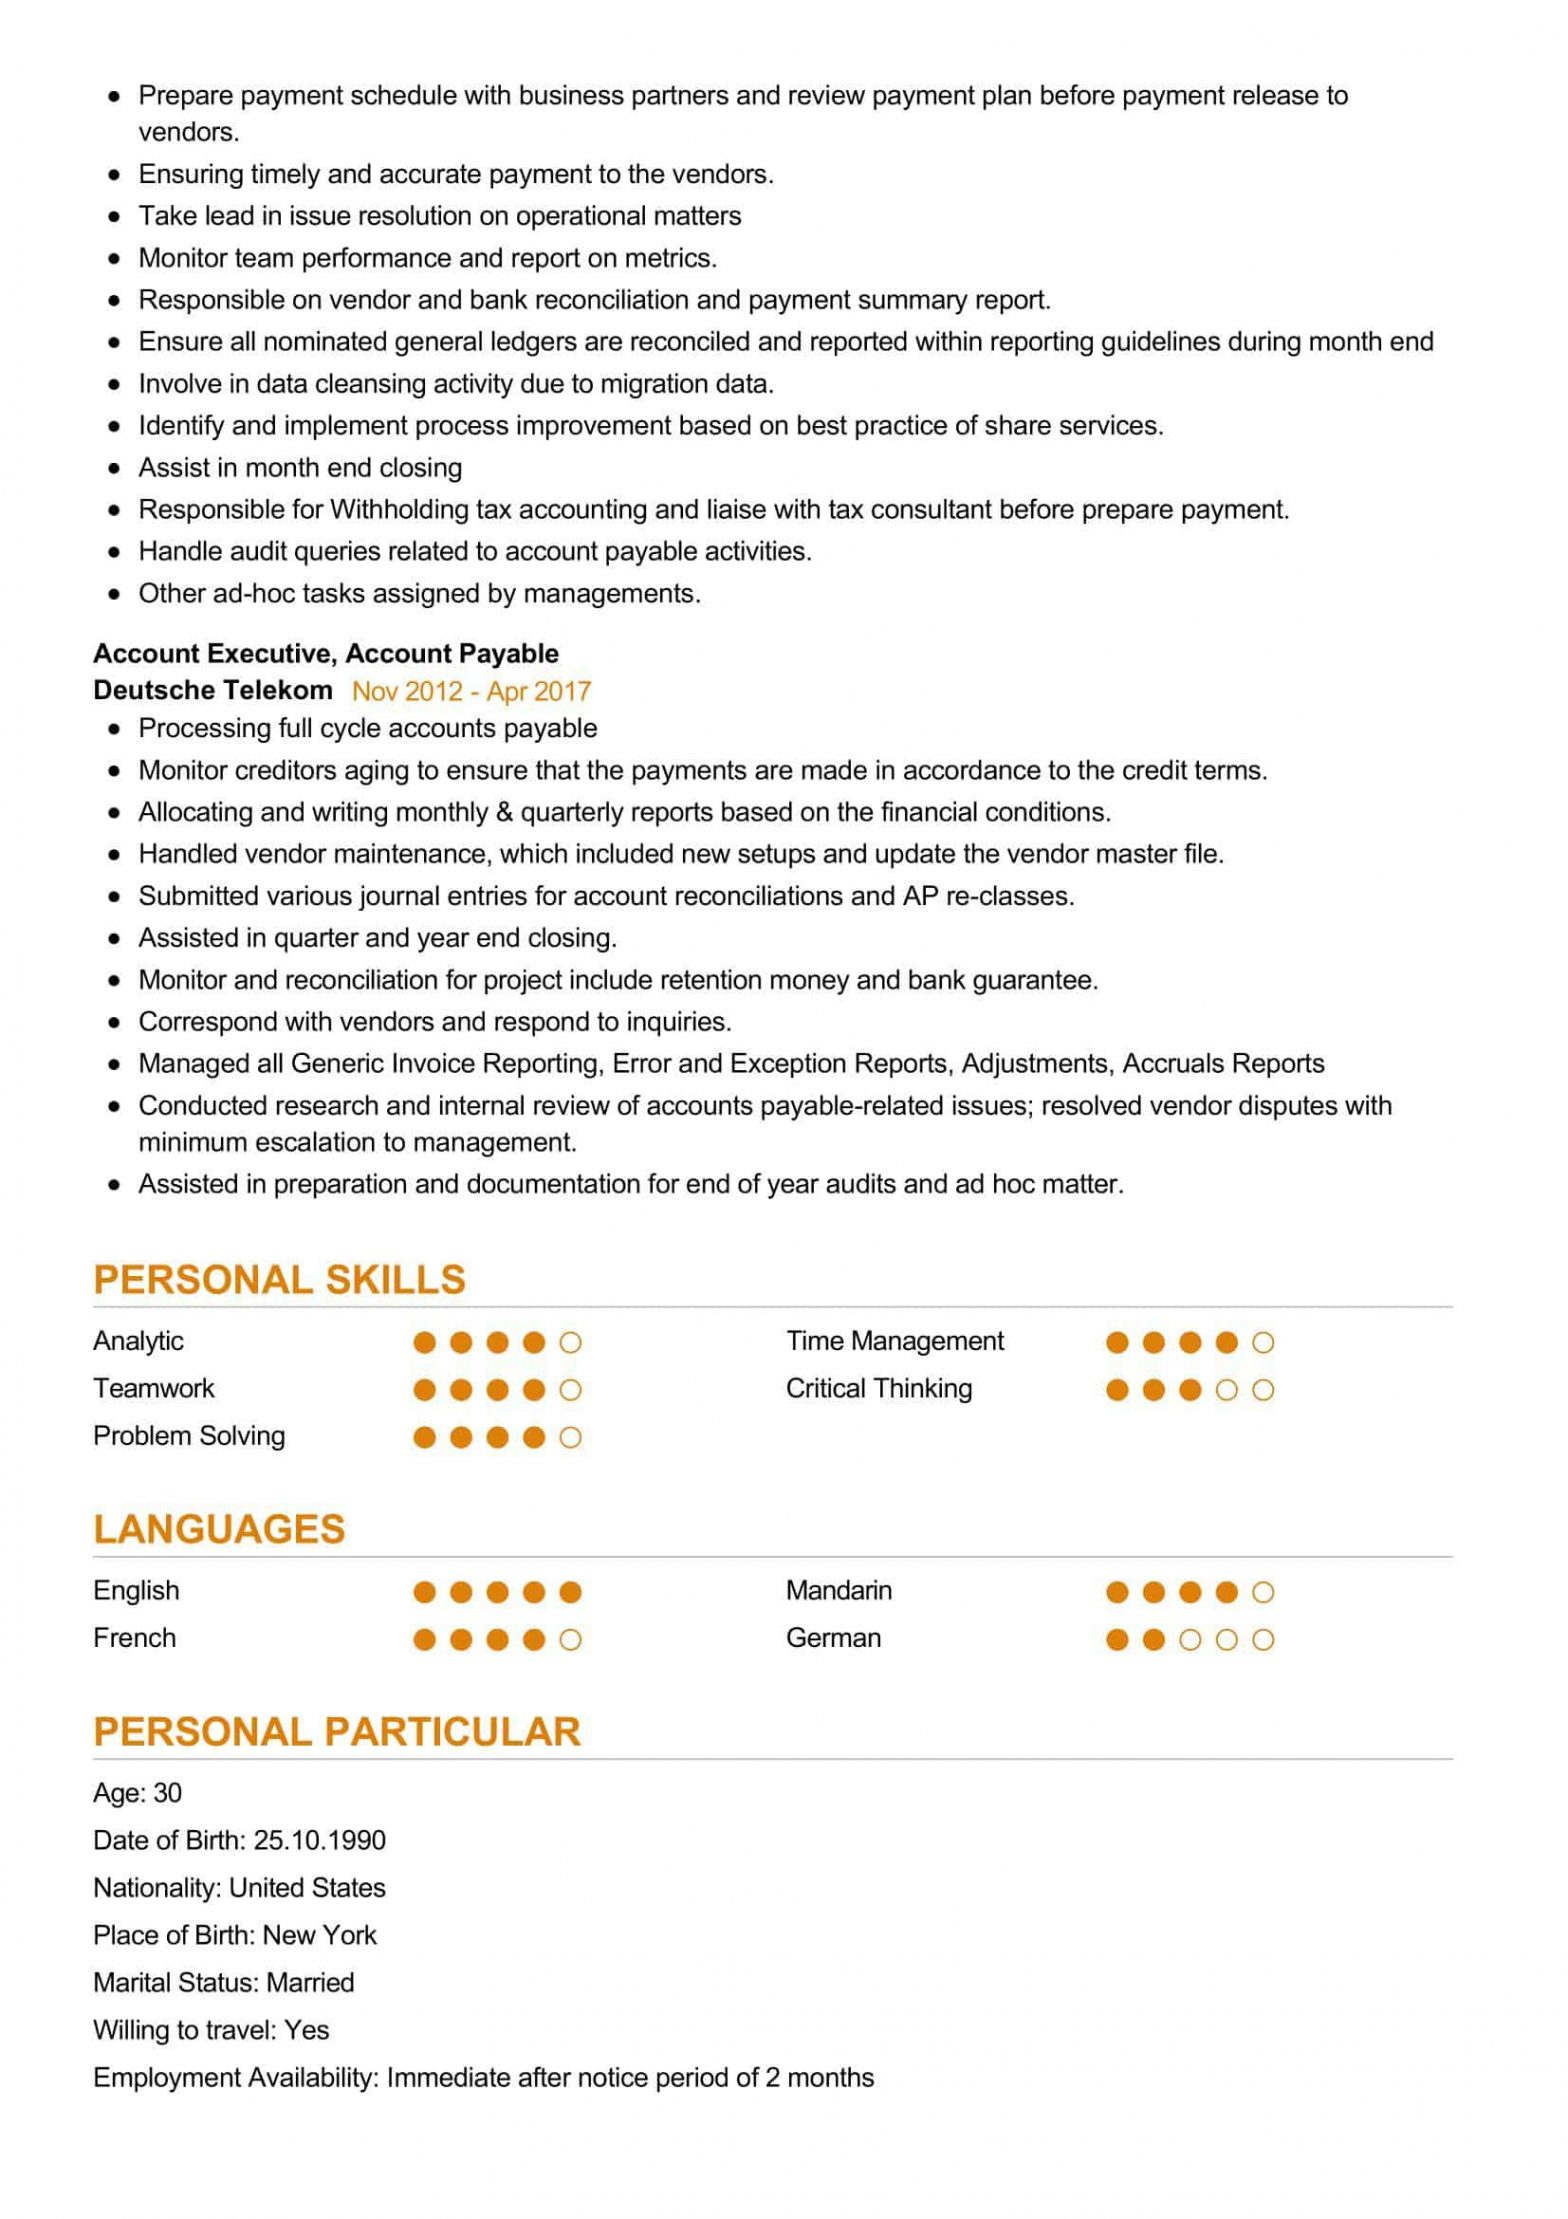 Sample Resume for Experienced Finance Executive Finance Executive Resume Sample Resumekraft